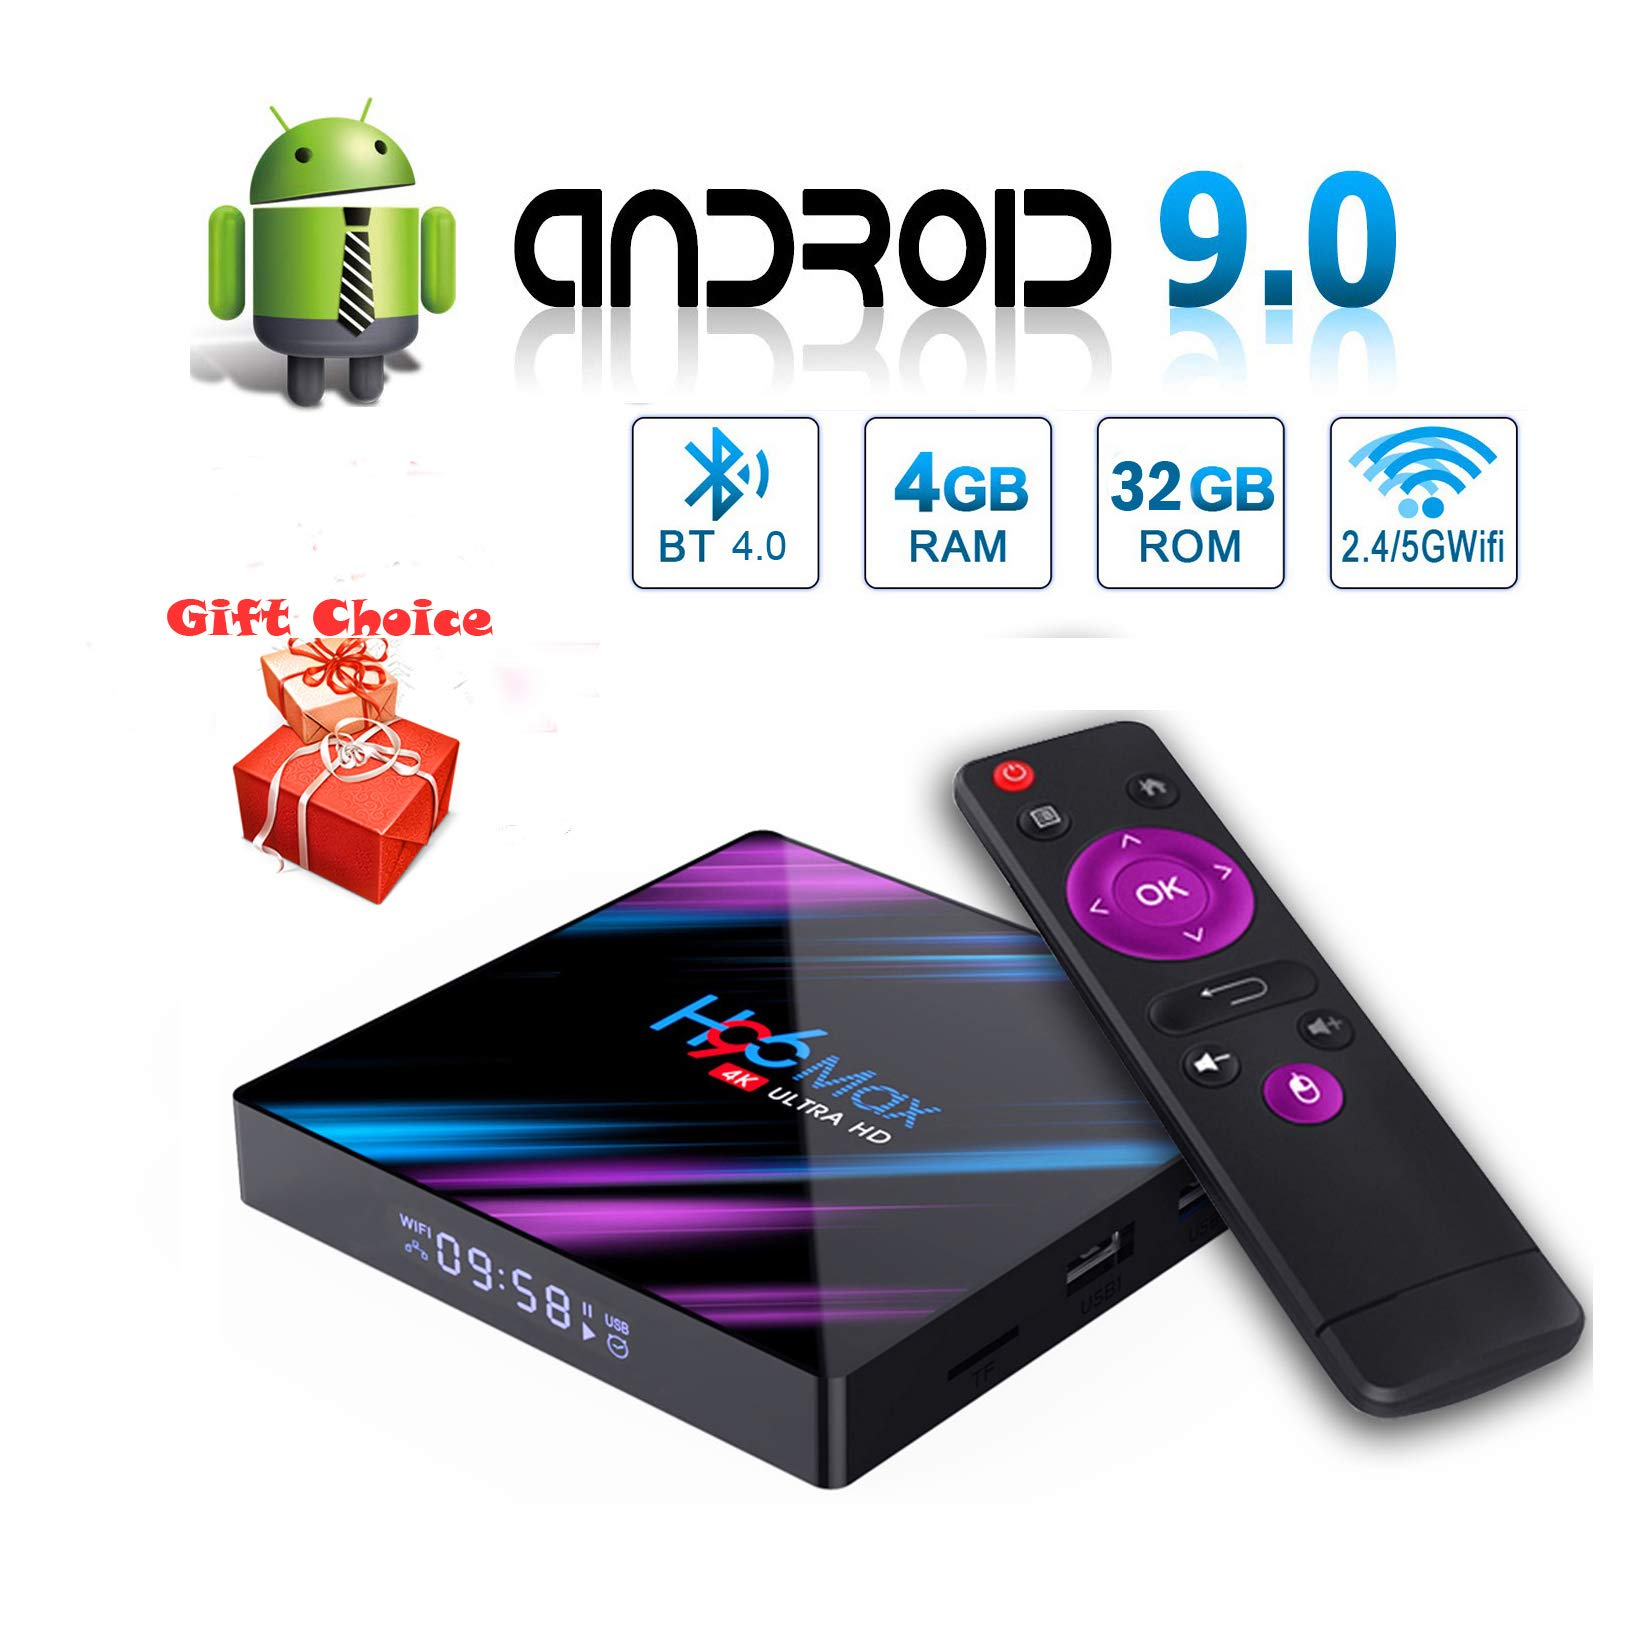 Android 9.0 TV Box, EstgoSZ H96 MAX 4GB 32GB Android Box USB 3.0 BT 4.0 2.4G 5G Dual WiFi 3D/4K H.265 KD18.1 Smart Android TV Box: Amazon.es: Electrónica